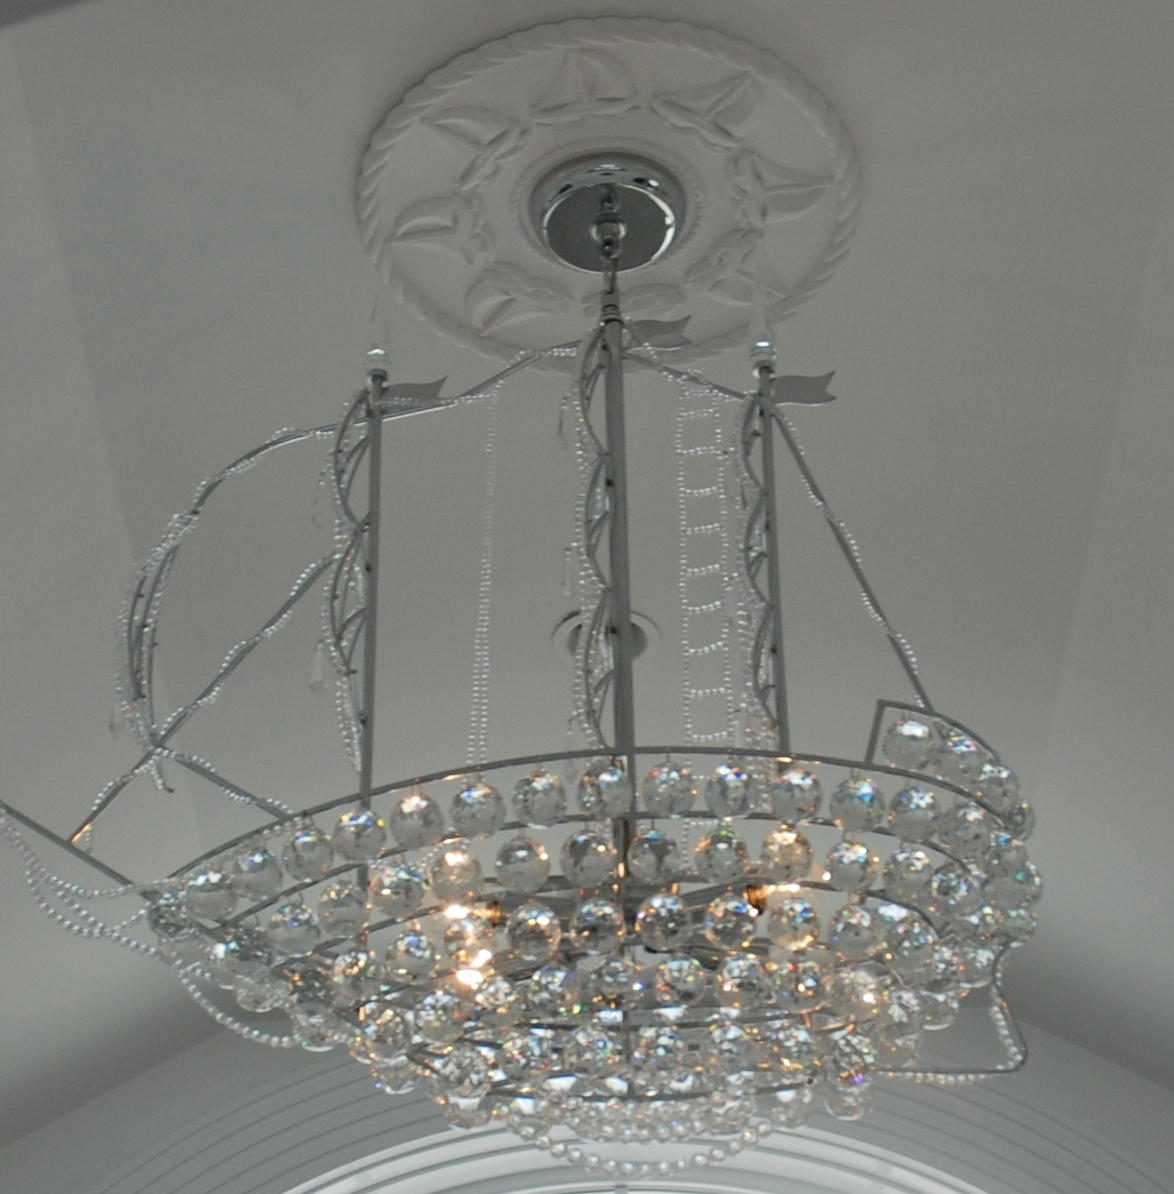 Marie ricci collection ceiling medallions in nautical designs by marie ricci arubaitofo Choice Image